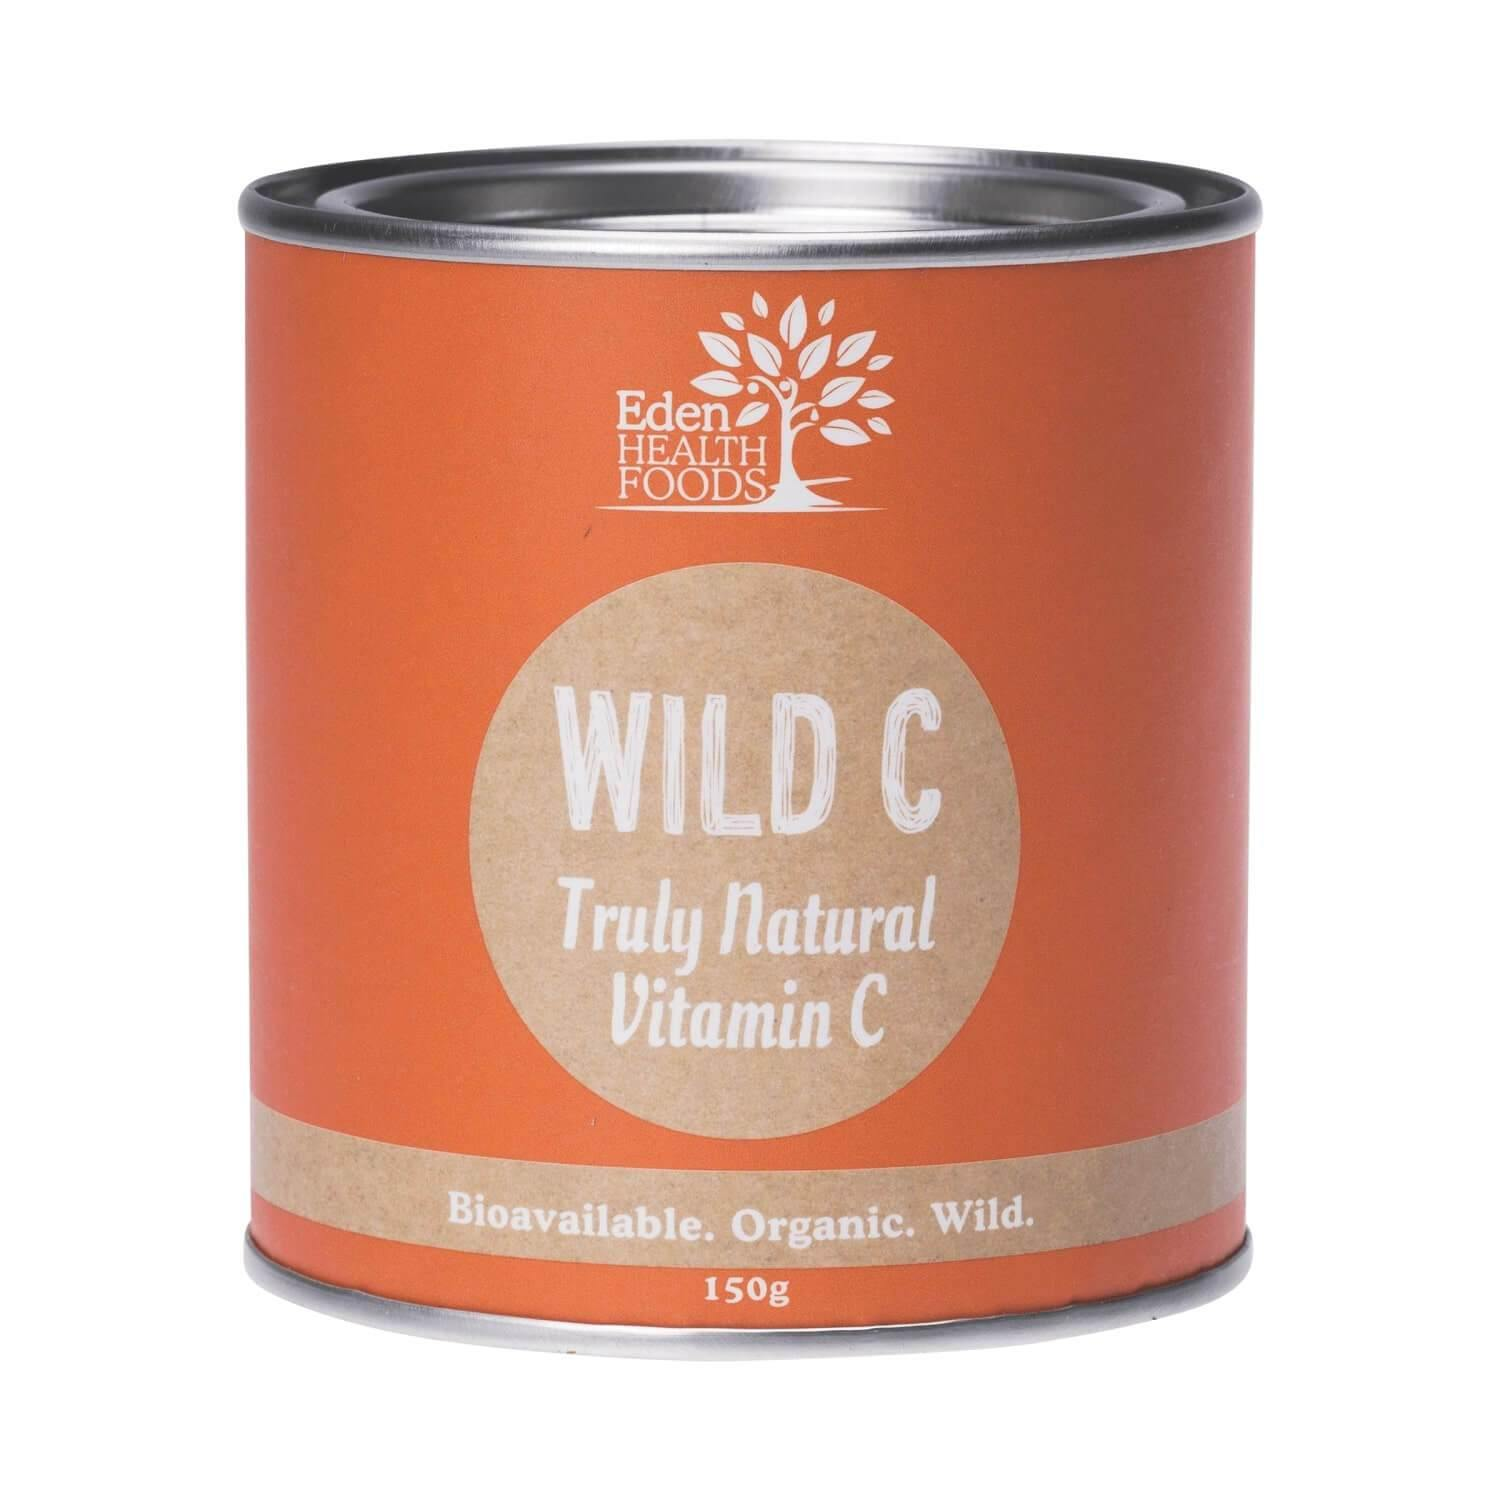 Eden Healthfoods Wild C Natural Vitamin C Powder 150g - EZ Organic Shop